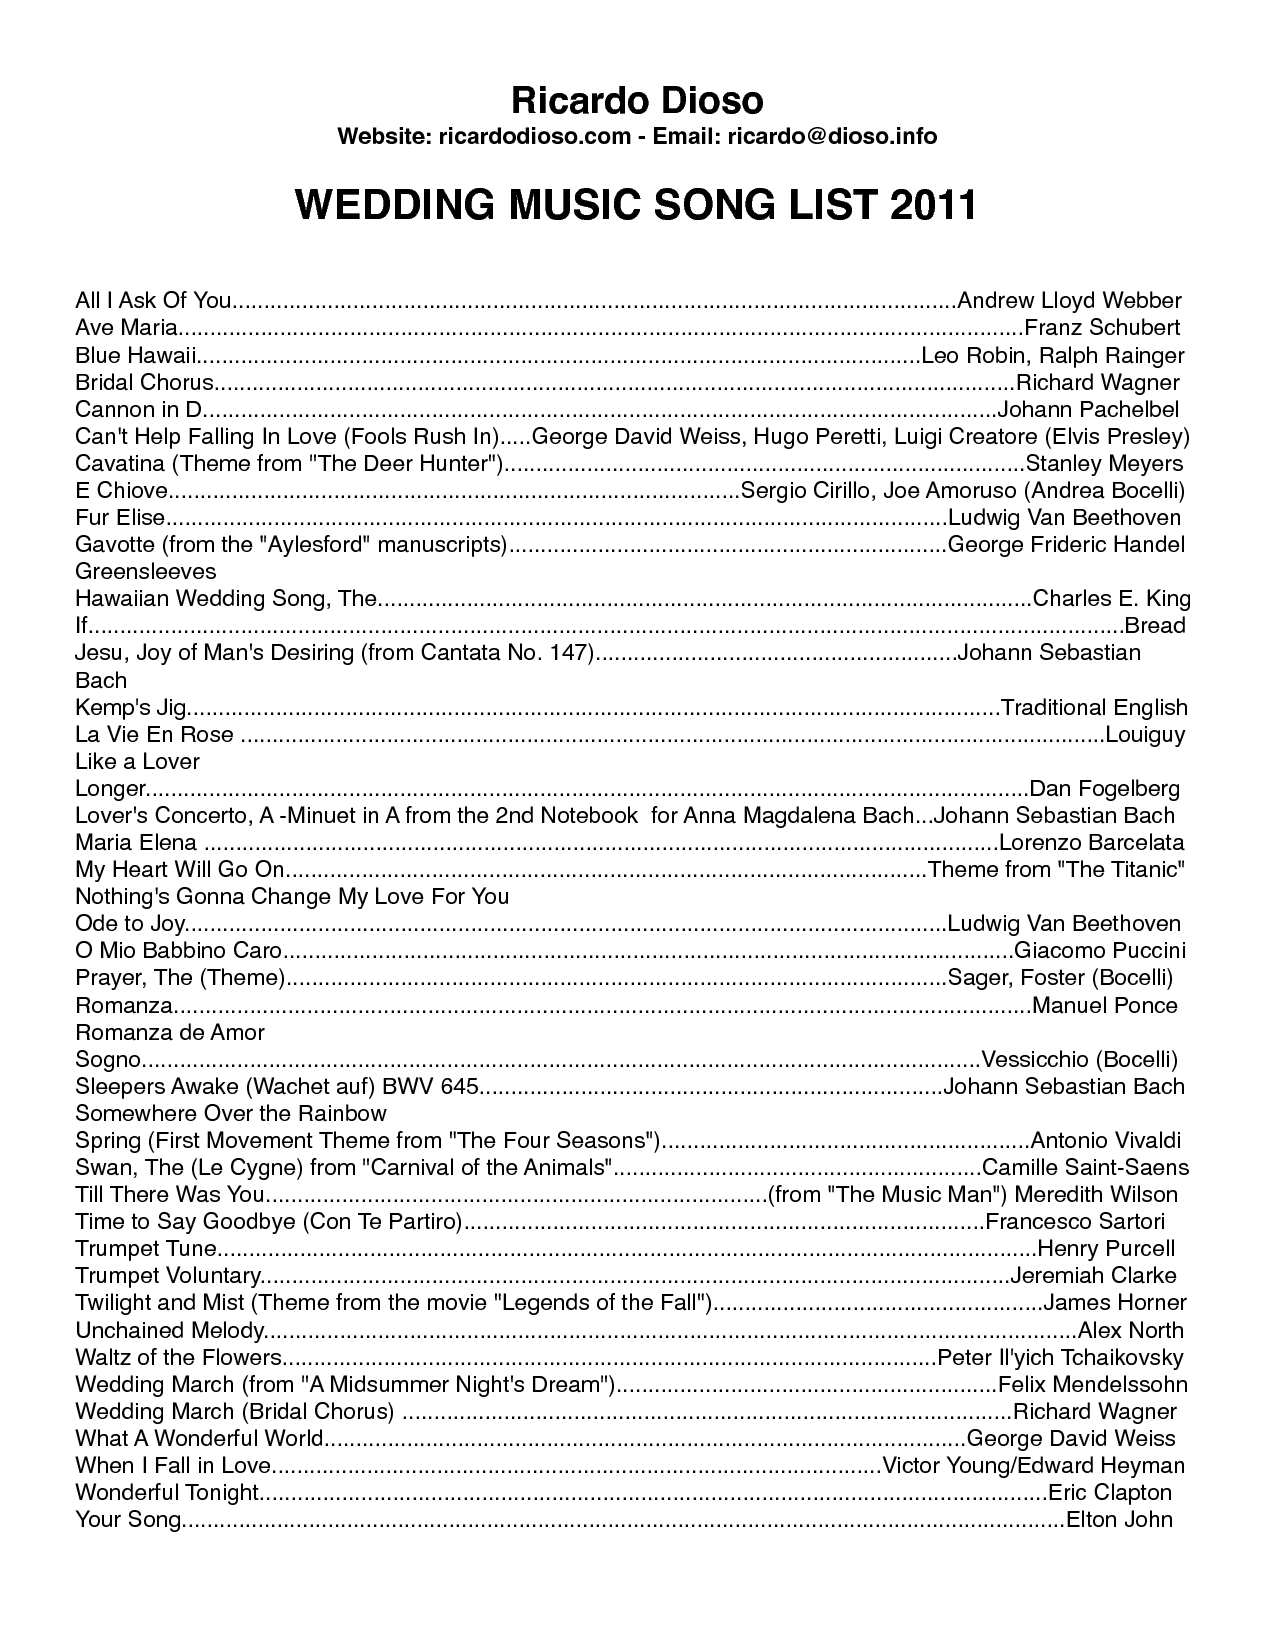 7 best Wedding Music images on Pinterest | Dream wedding, Music ...